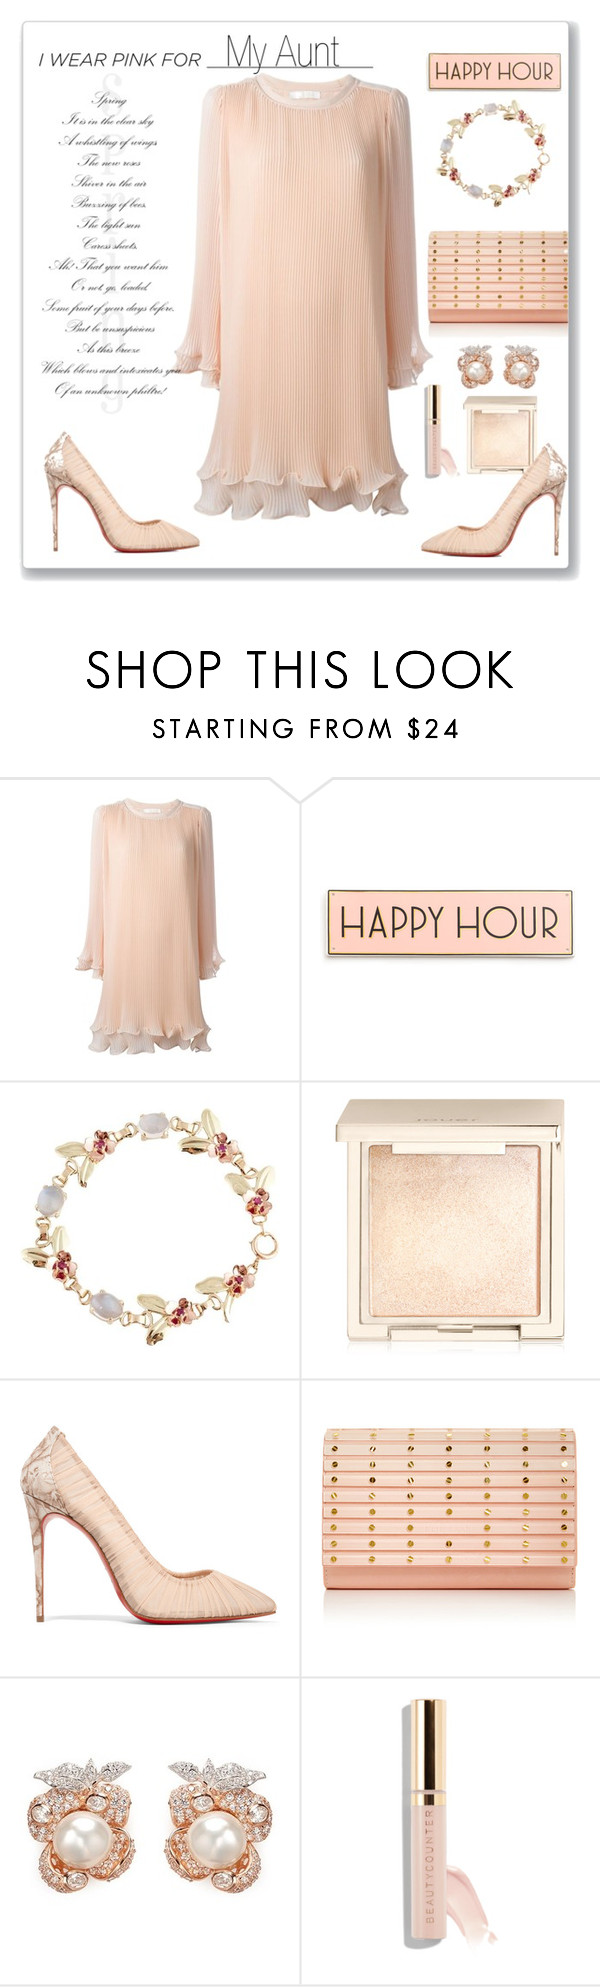 """I Wear Pink For..."" by faten-m-h ❤ liked on Polyvore featuring Chloé, Rosanna, Tiffany & Co., Jouer, Christian Louboutin, Elie Saab, Anabela Chan, Beautycounter and IWearPinkFor"